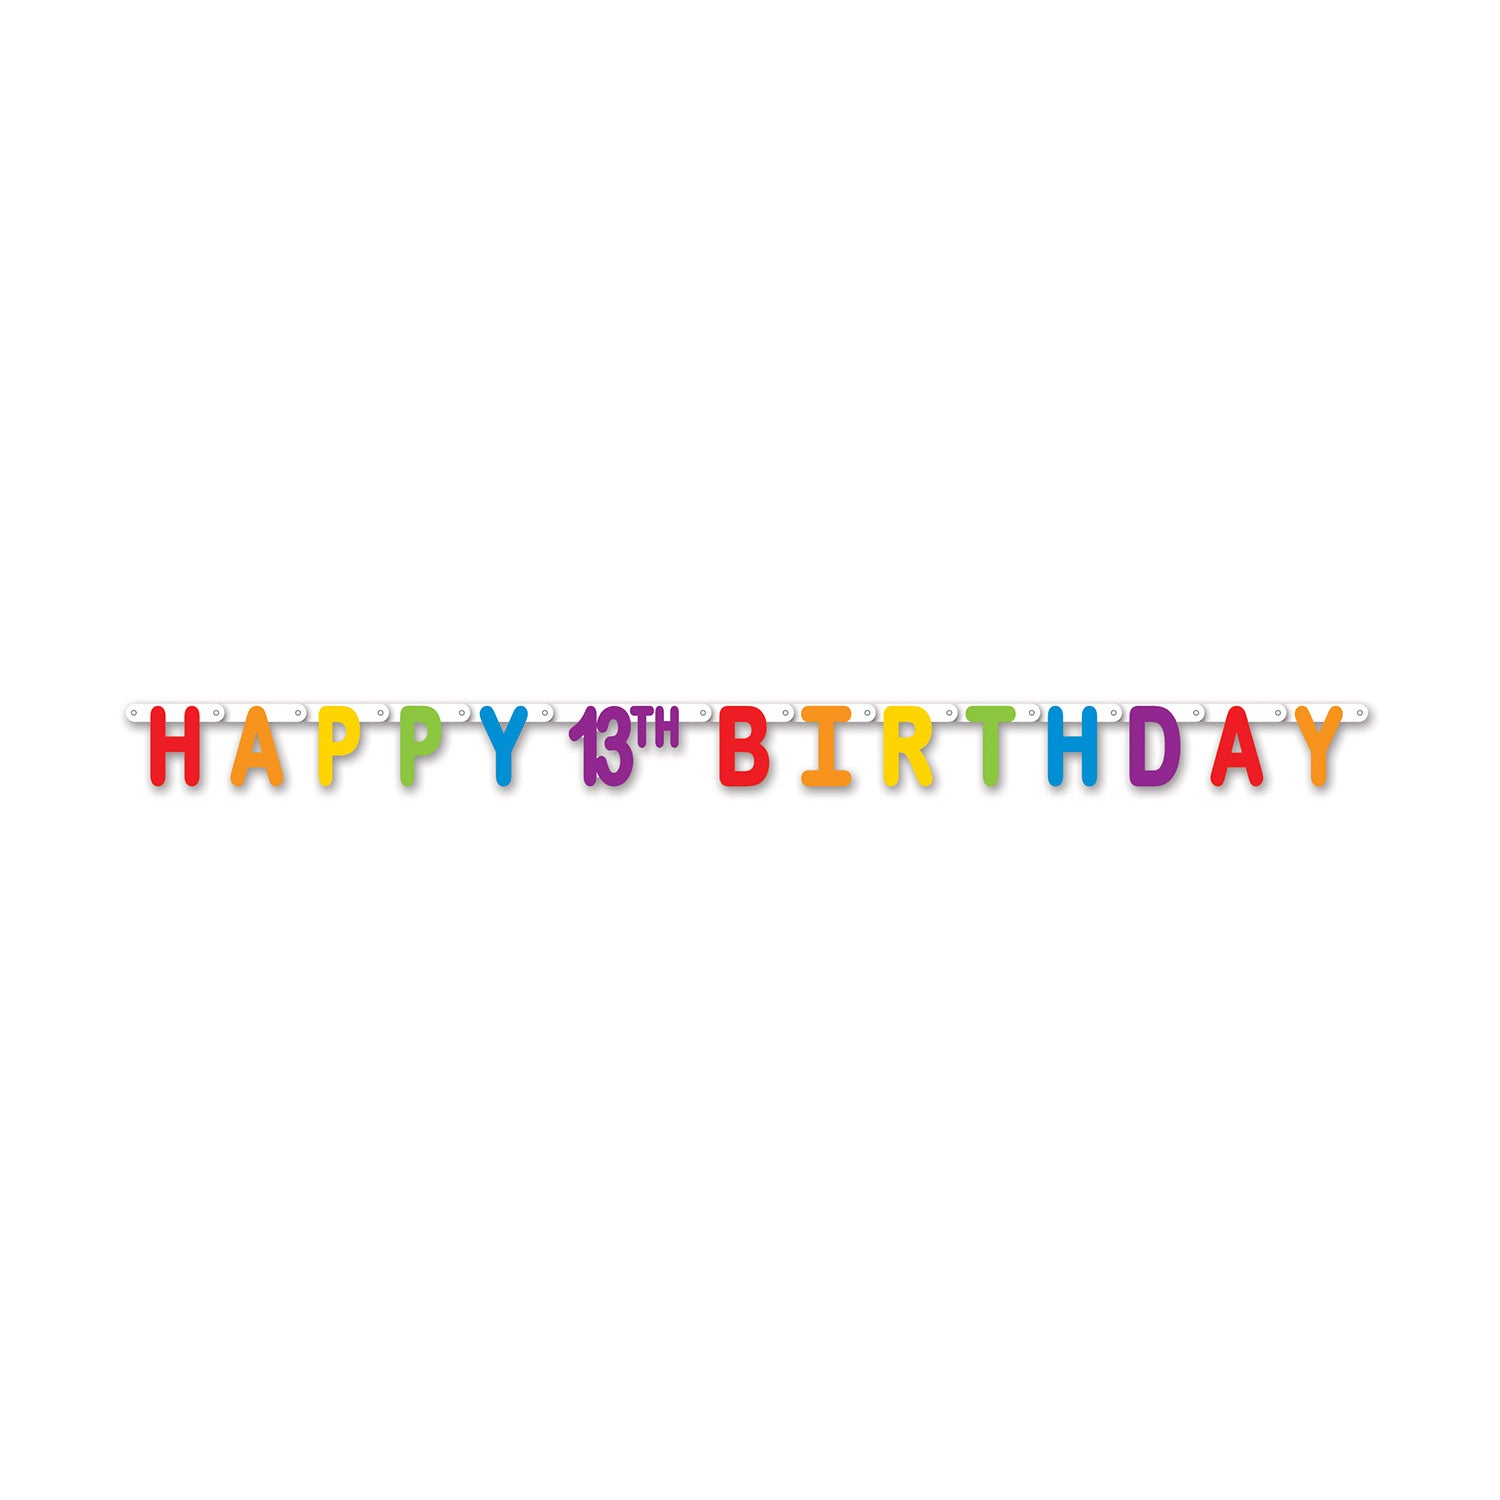 Happy 13th Birthday Streamer Party Supplies Decorations The Beistle Company